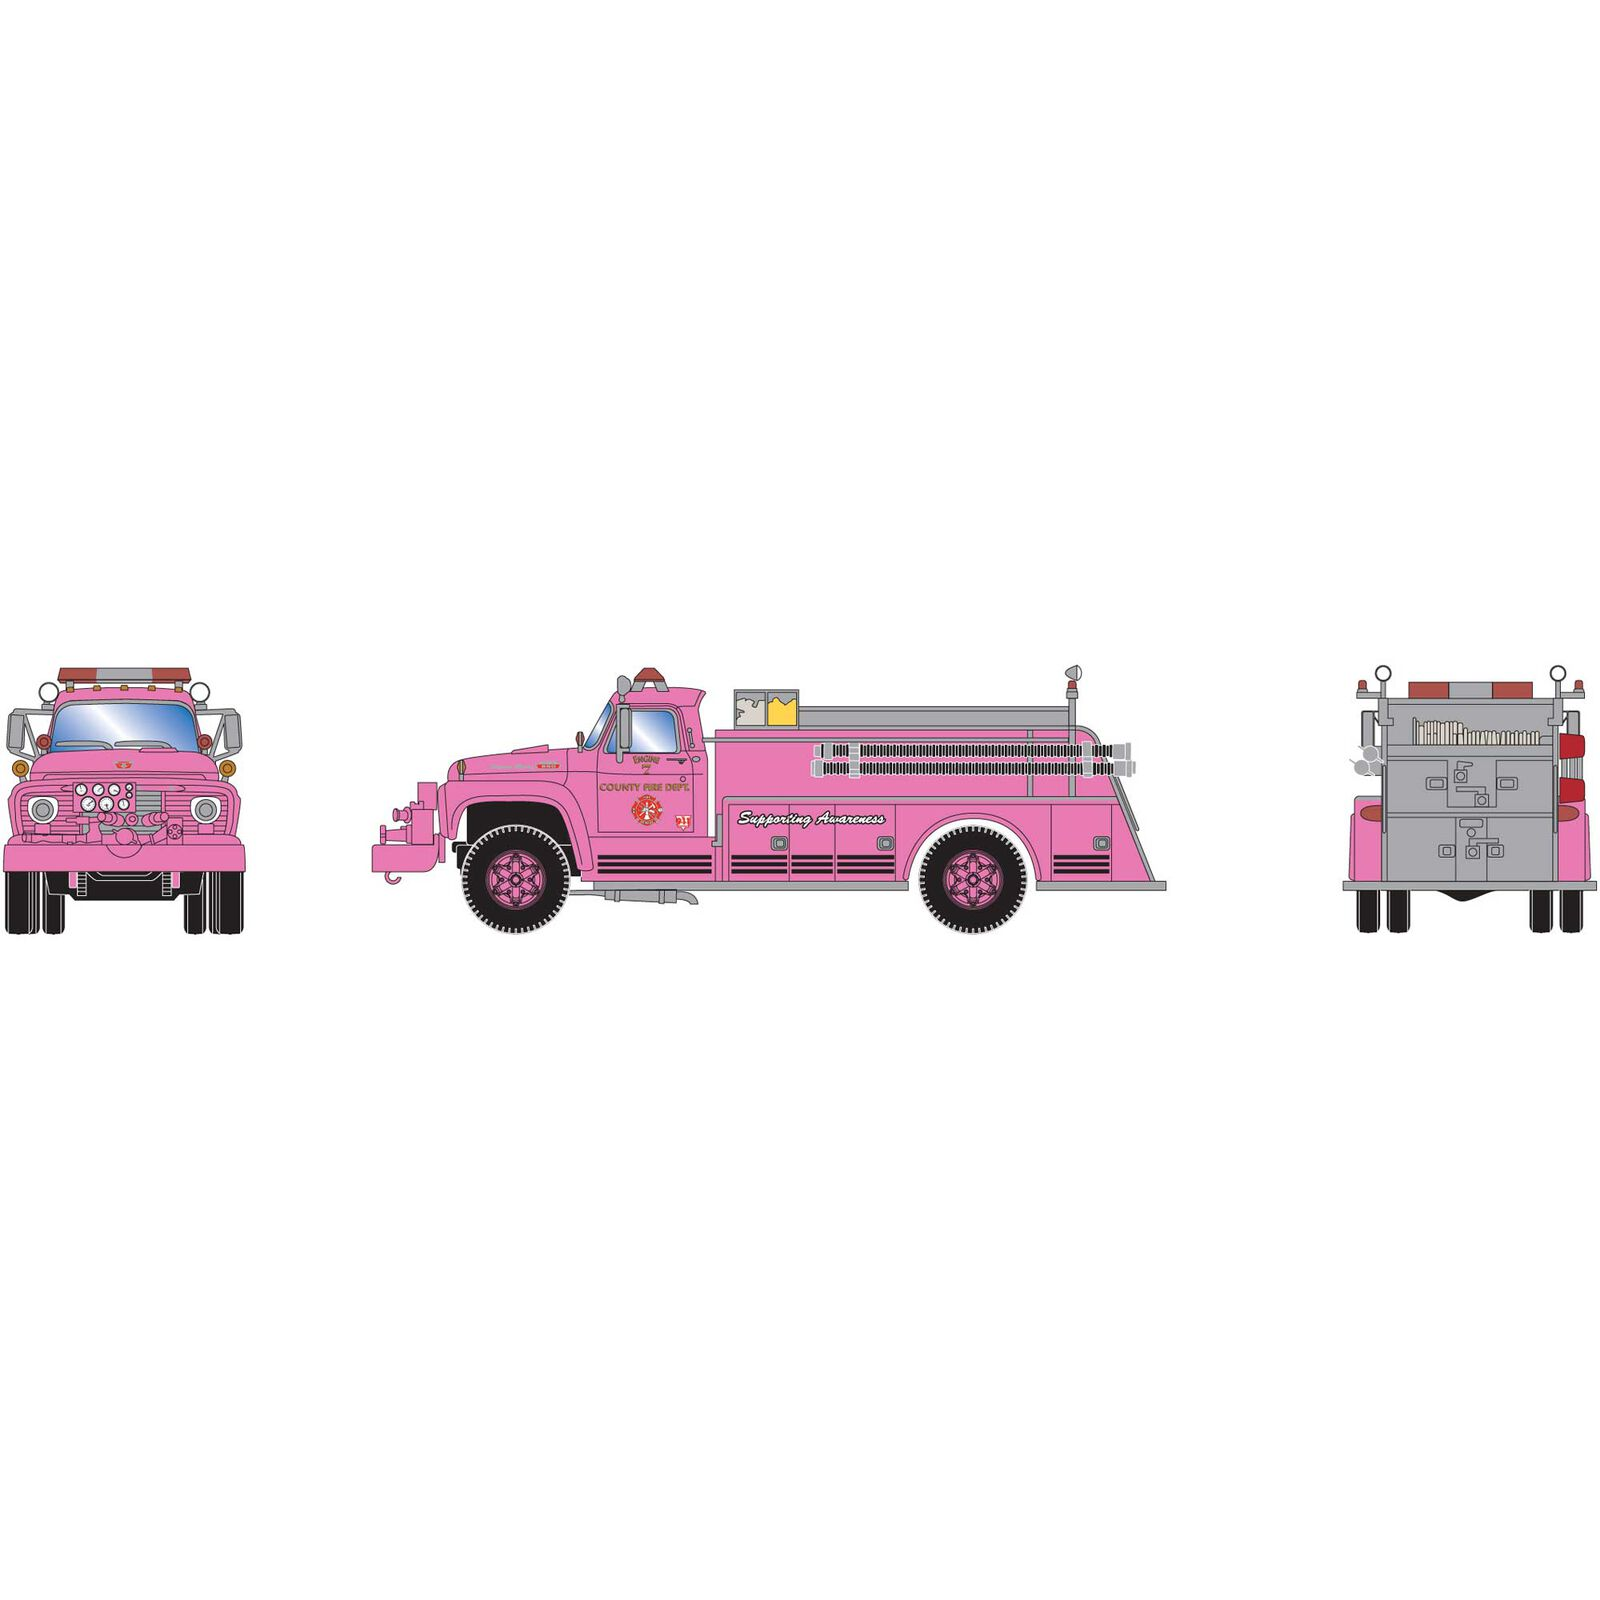 HO RTR Ford F-850 Fire Truck, County Fire Pink